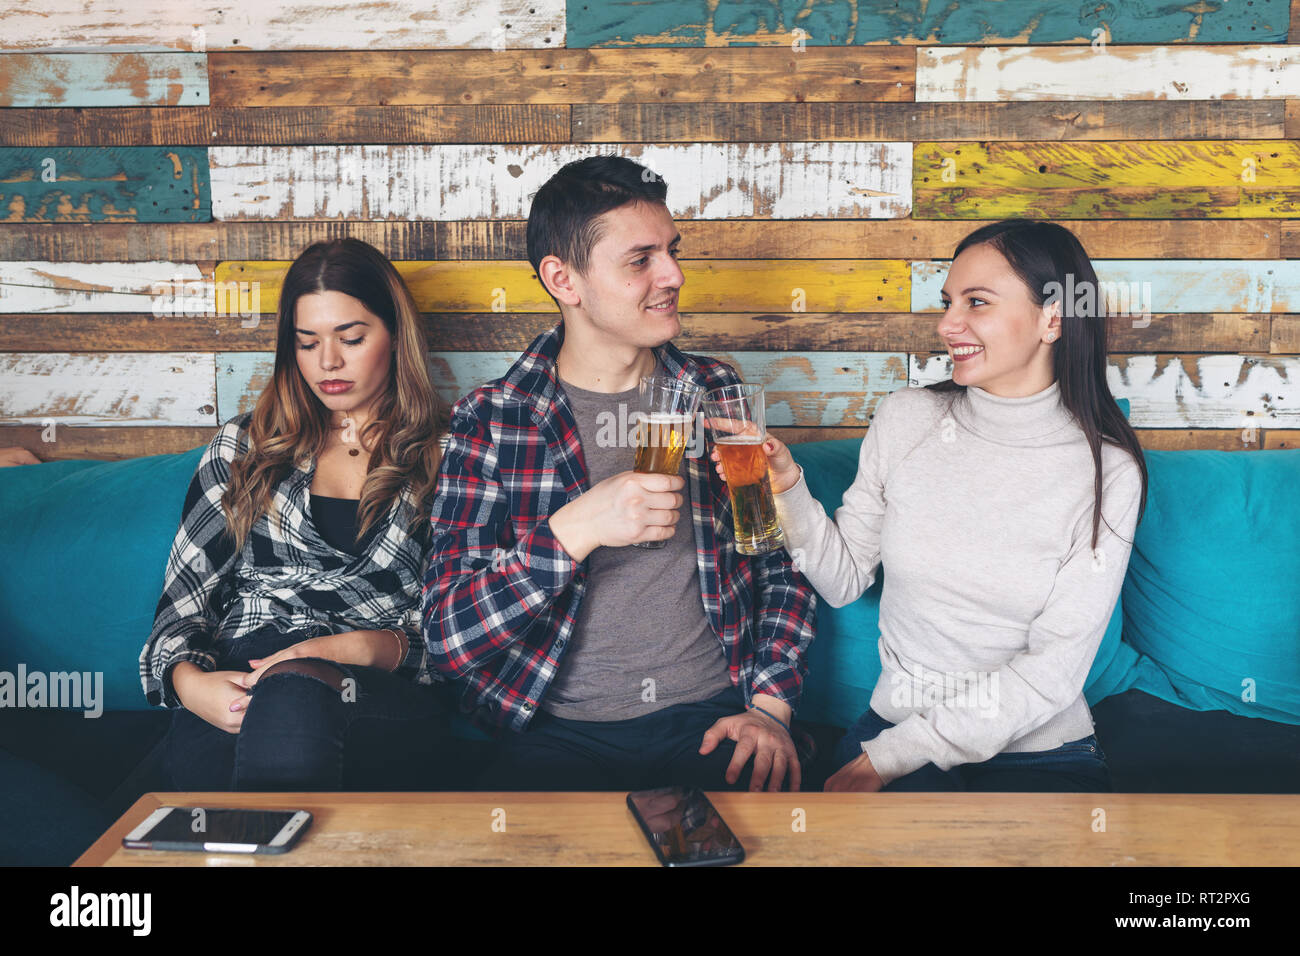 Happy young girl drinking beer with young man and socialise ignoring other jealous sad woman sitting next to them at rustic bar restaurant. Love and j - Stock Image